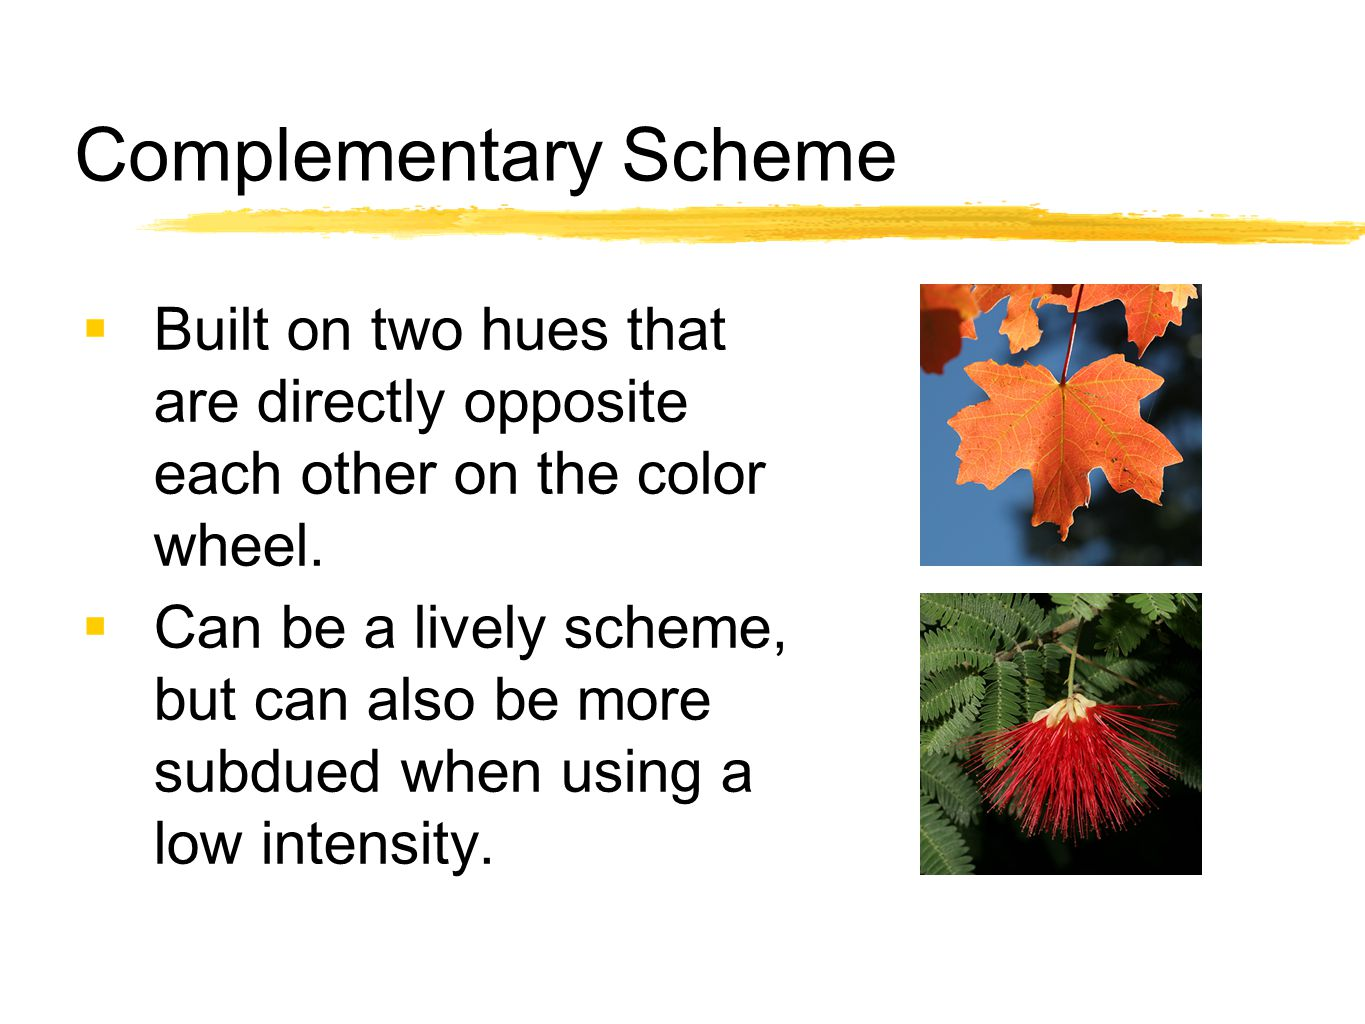 Complementary Scheme Built on two hues that are directly opposite each other on the color wheel.